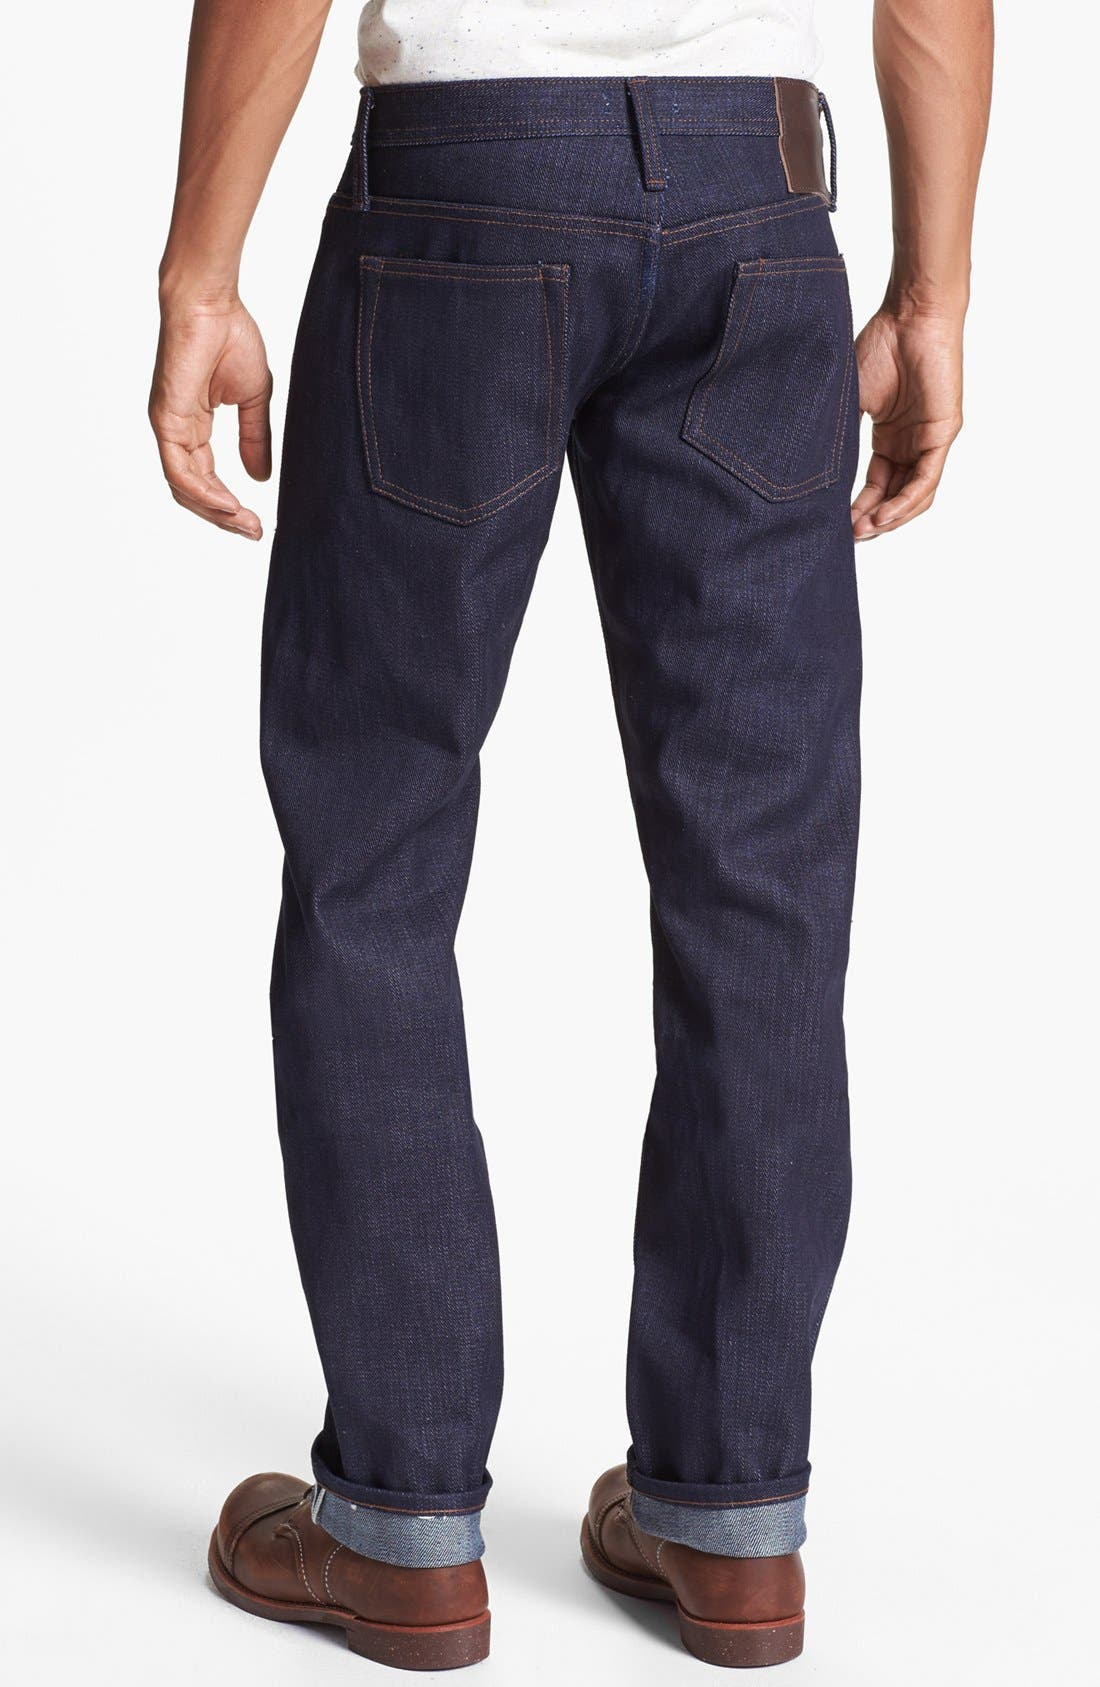 THE UNBRANDED BRAND,                             'UB221' Slim Fit Raw Selvedge Jeans,                             Alternate thumbnail 3, color,                             401